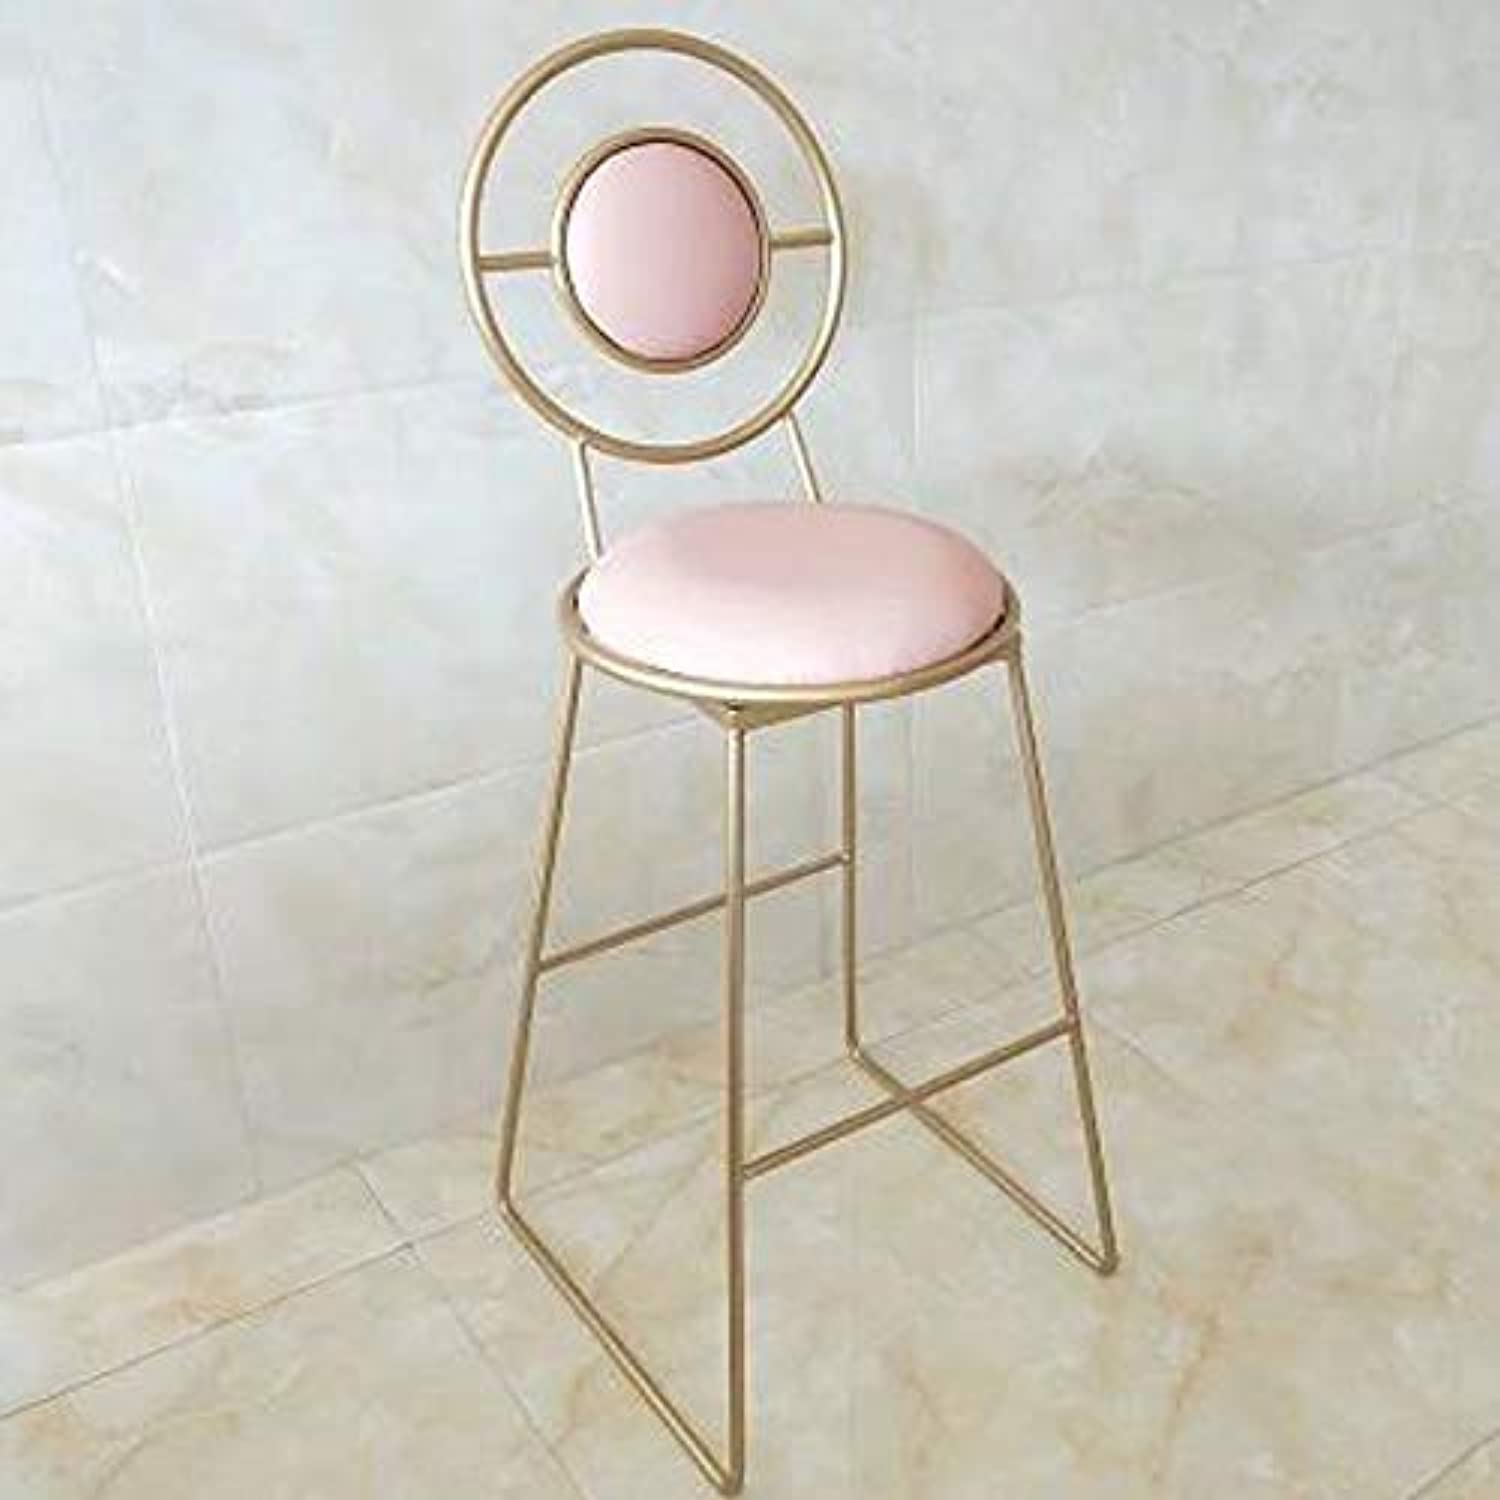 Barstools, European Bar High Chair golden Wrought Iron Back High Stool Modern Minimalist Home Coffee Shop Front Chair (color   K gold, Size   45cm)